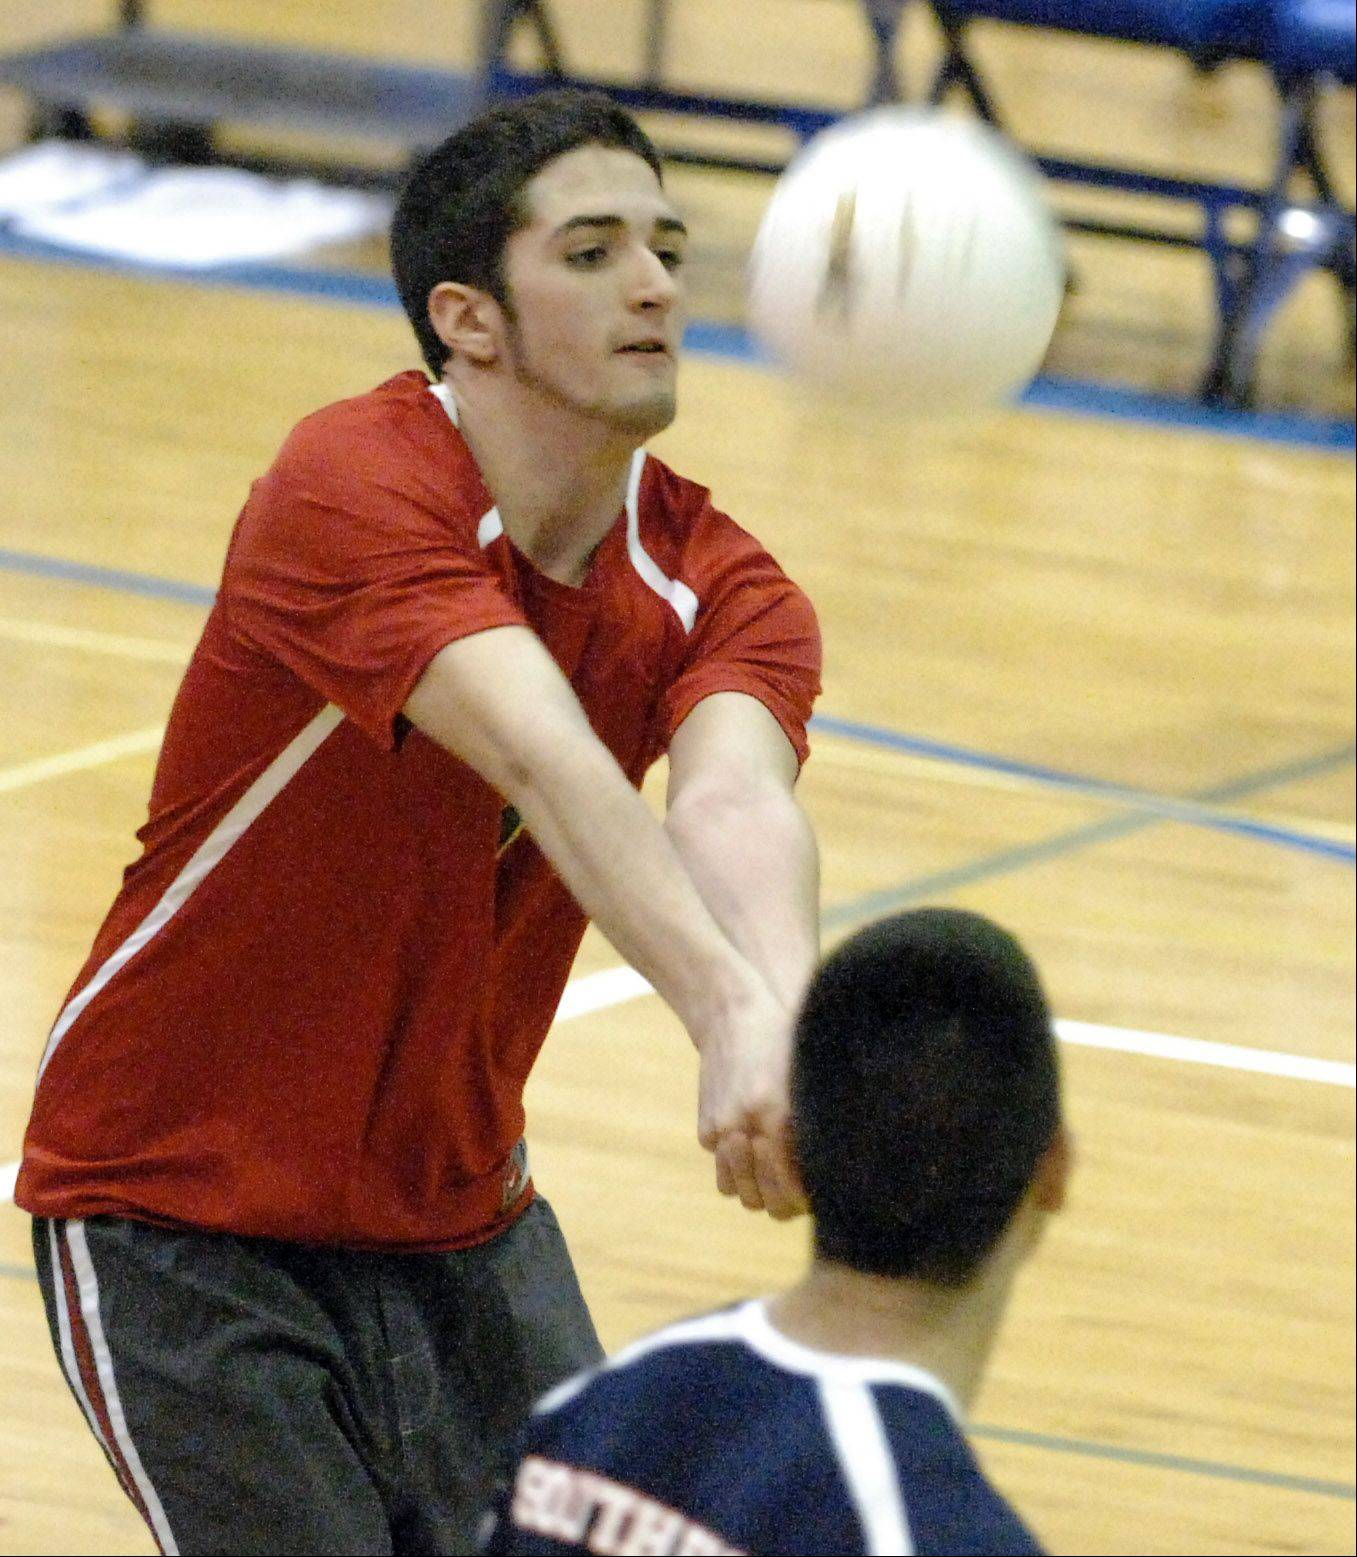 South Elgin's Joe Lullo returns a serve against Larkin during Thursday's game at Larkin in Elgin.